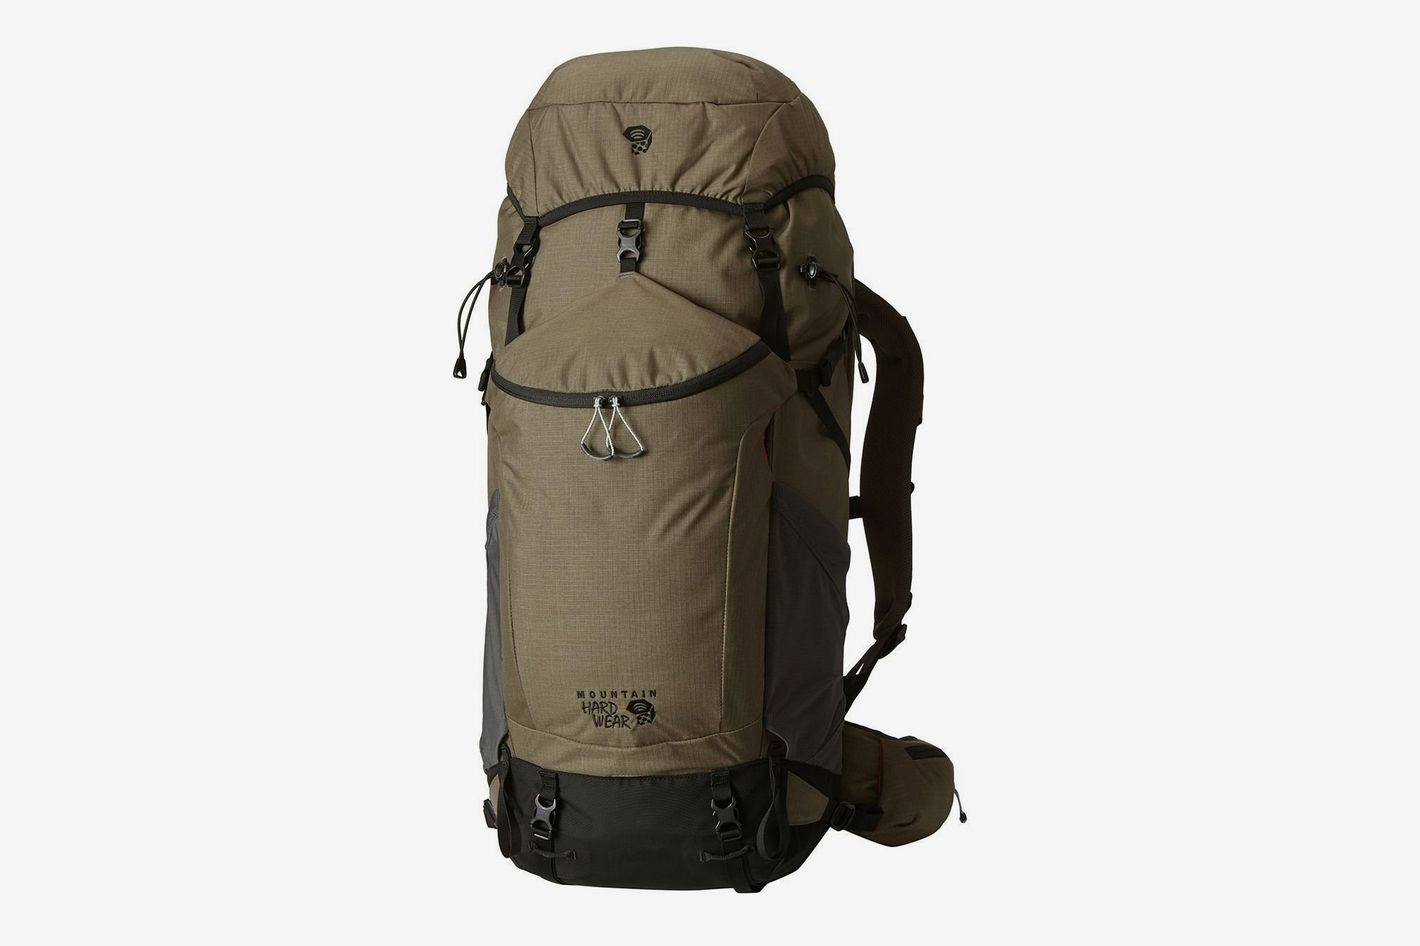 0e6ec987d211 The 6 Best Hiking Backpacks and Backpacking Backpacks 2018